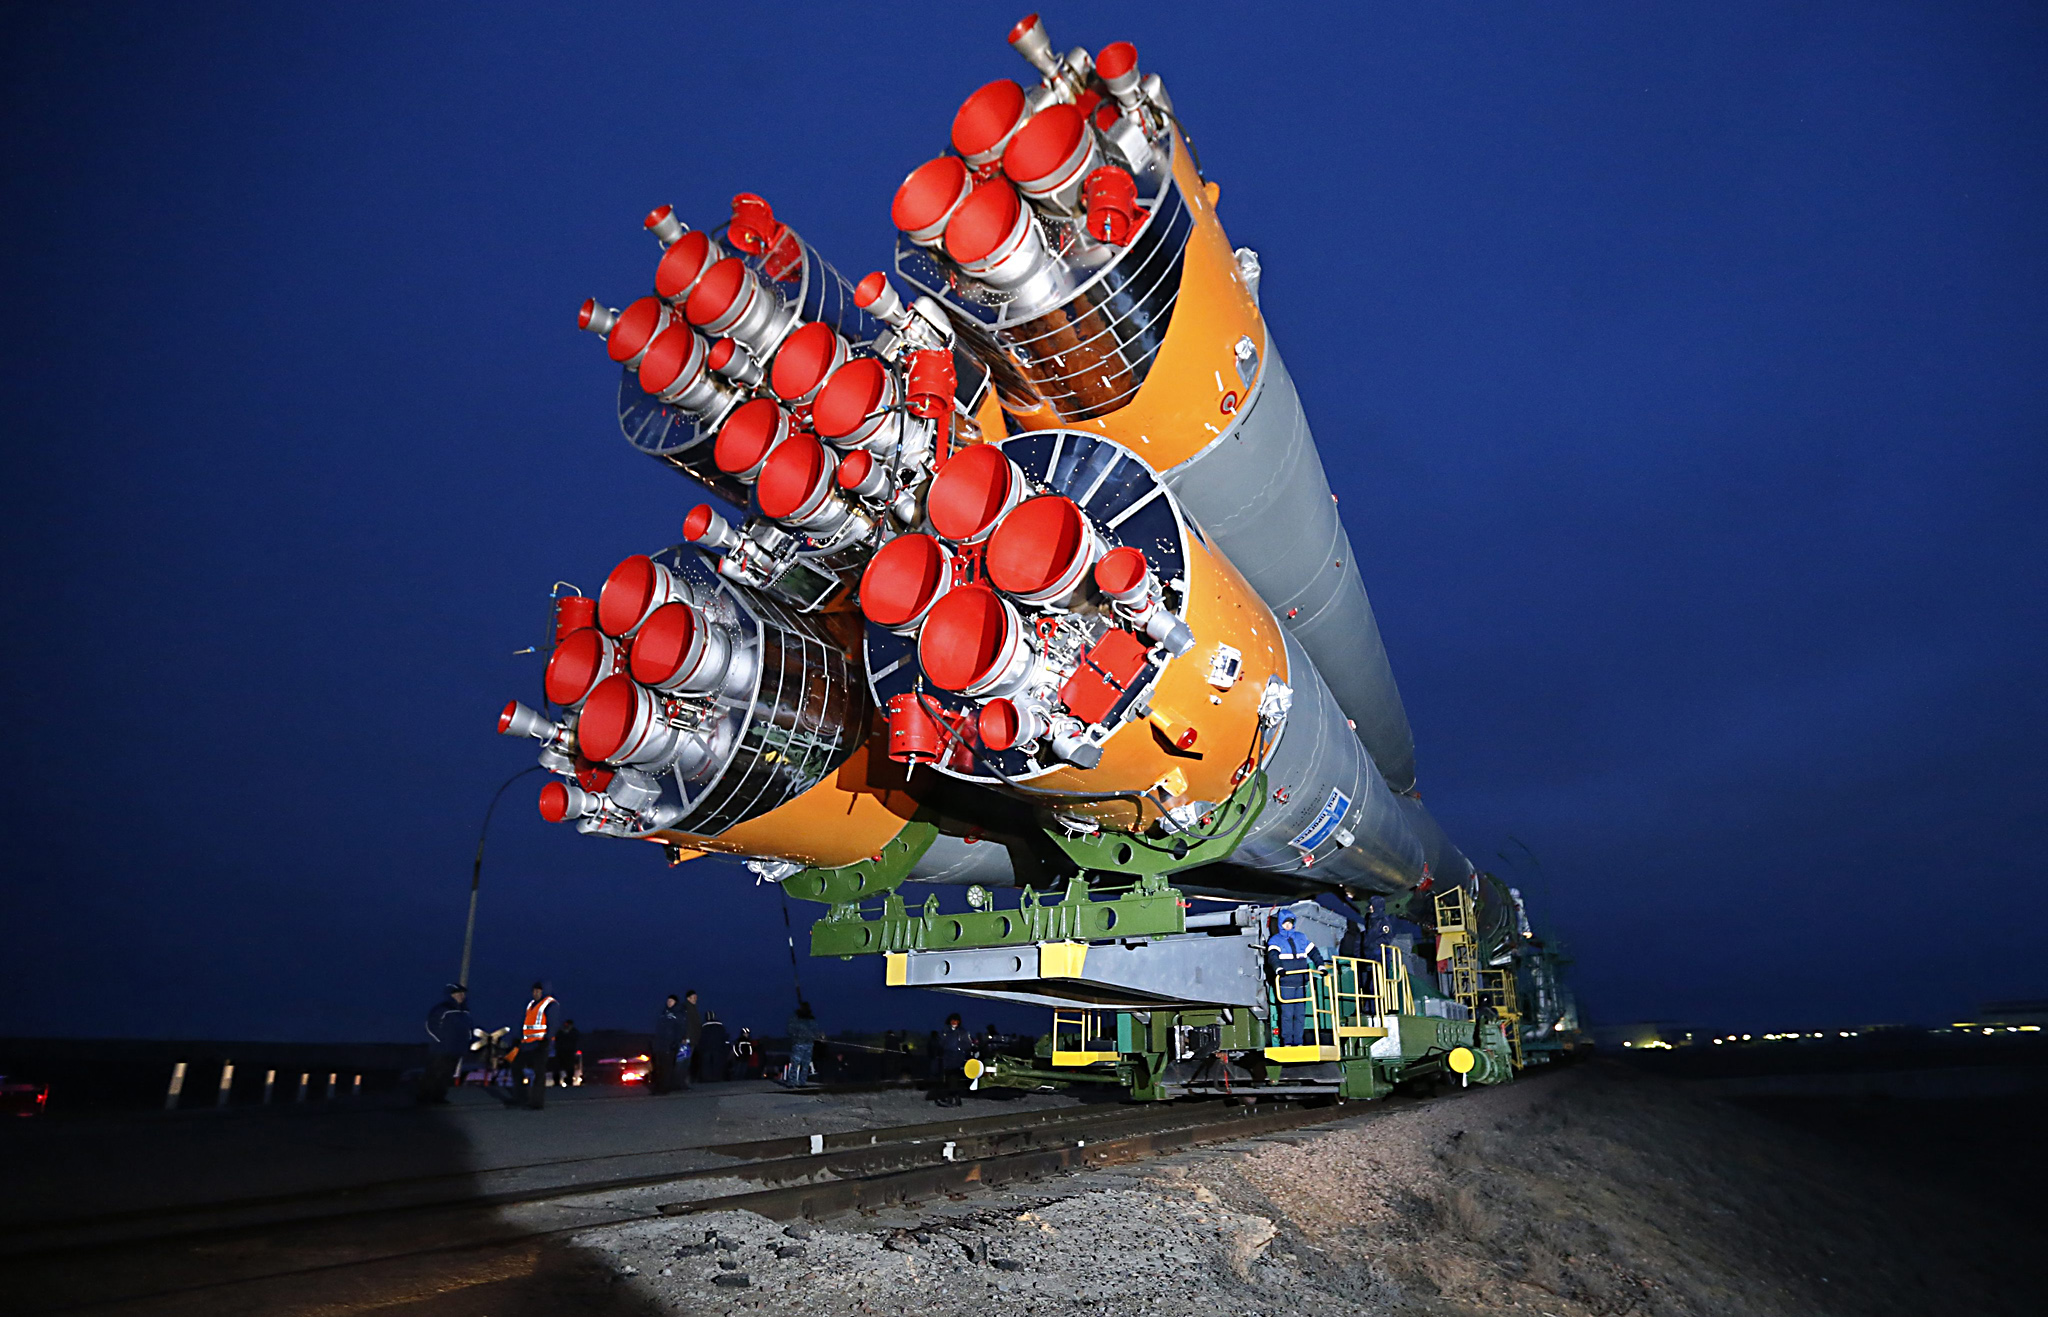 Russian Soyuz TMA-20M rocket booster is moved for installation ahead of launch...epa05213713 Russian Soyuz TMA-20M rocket booster is moved for installation at the launch pad at Baikonur cosmodrome in Kazakhstan, 16 March 2016. The crew is set to take off from Kazakhstan's Baikonur cosmodrome to the International Space Station (ISS) on 19 March 2016.  EPA/YURI KOCHETKOV